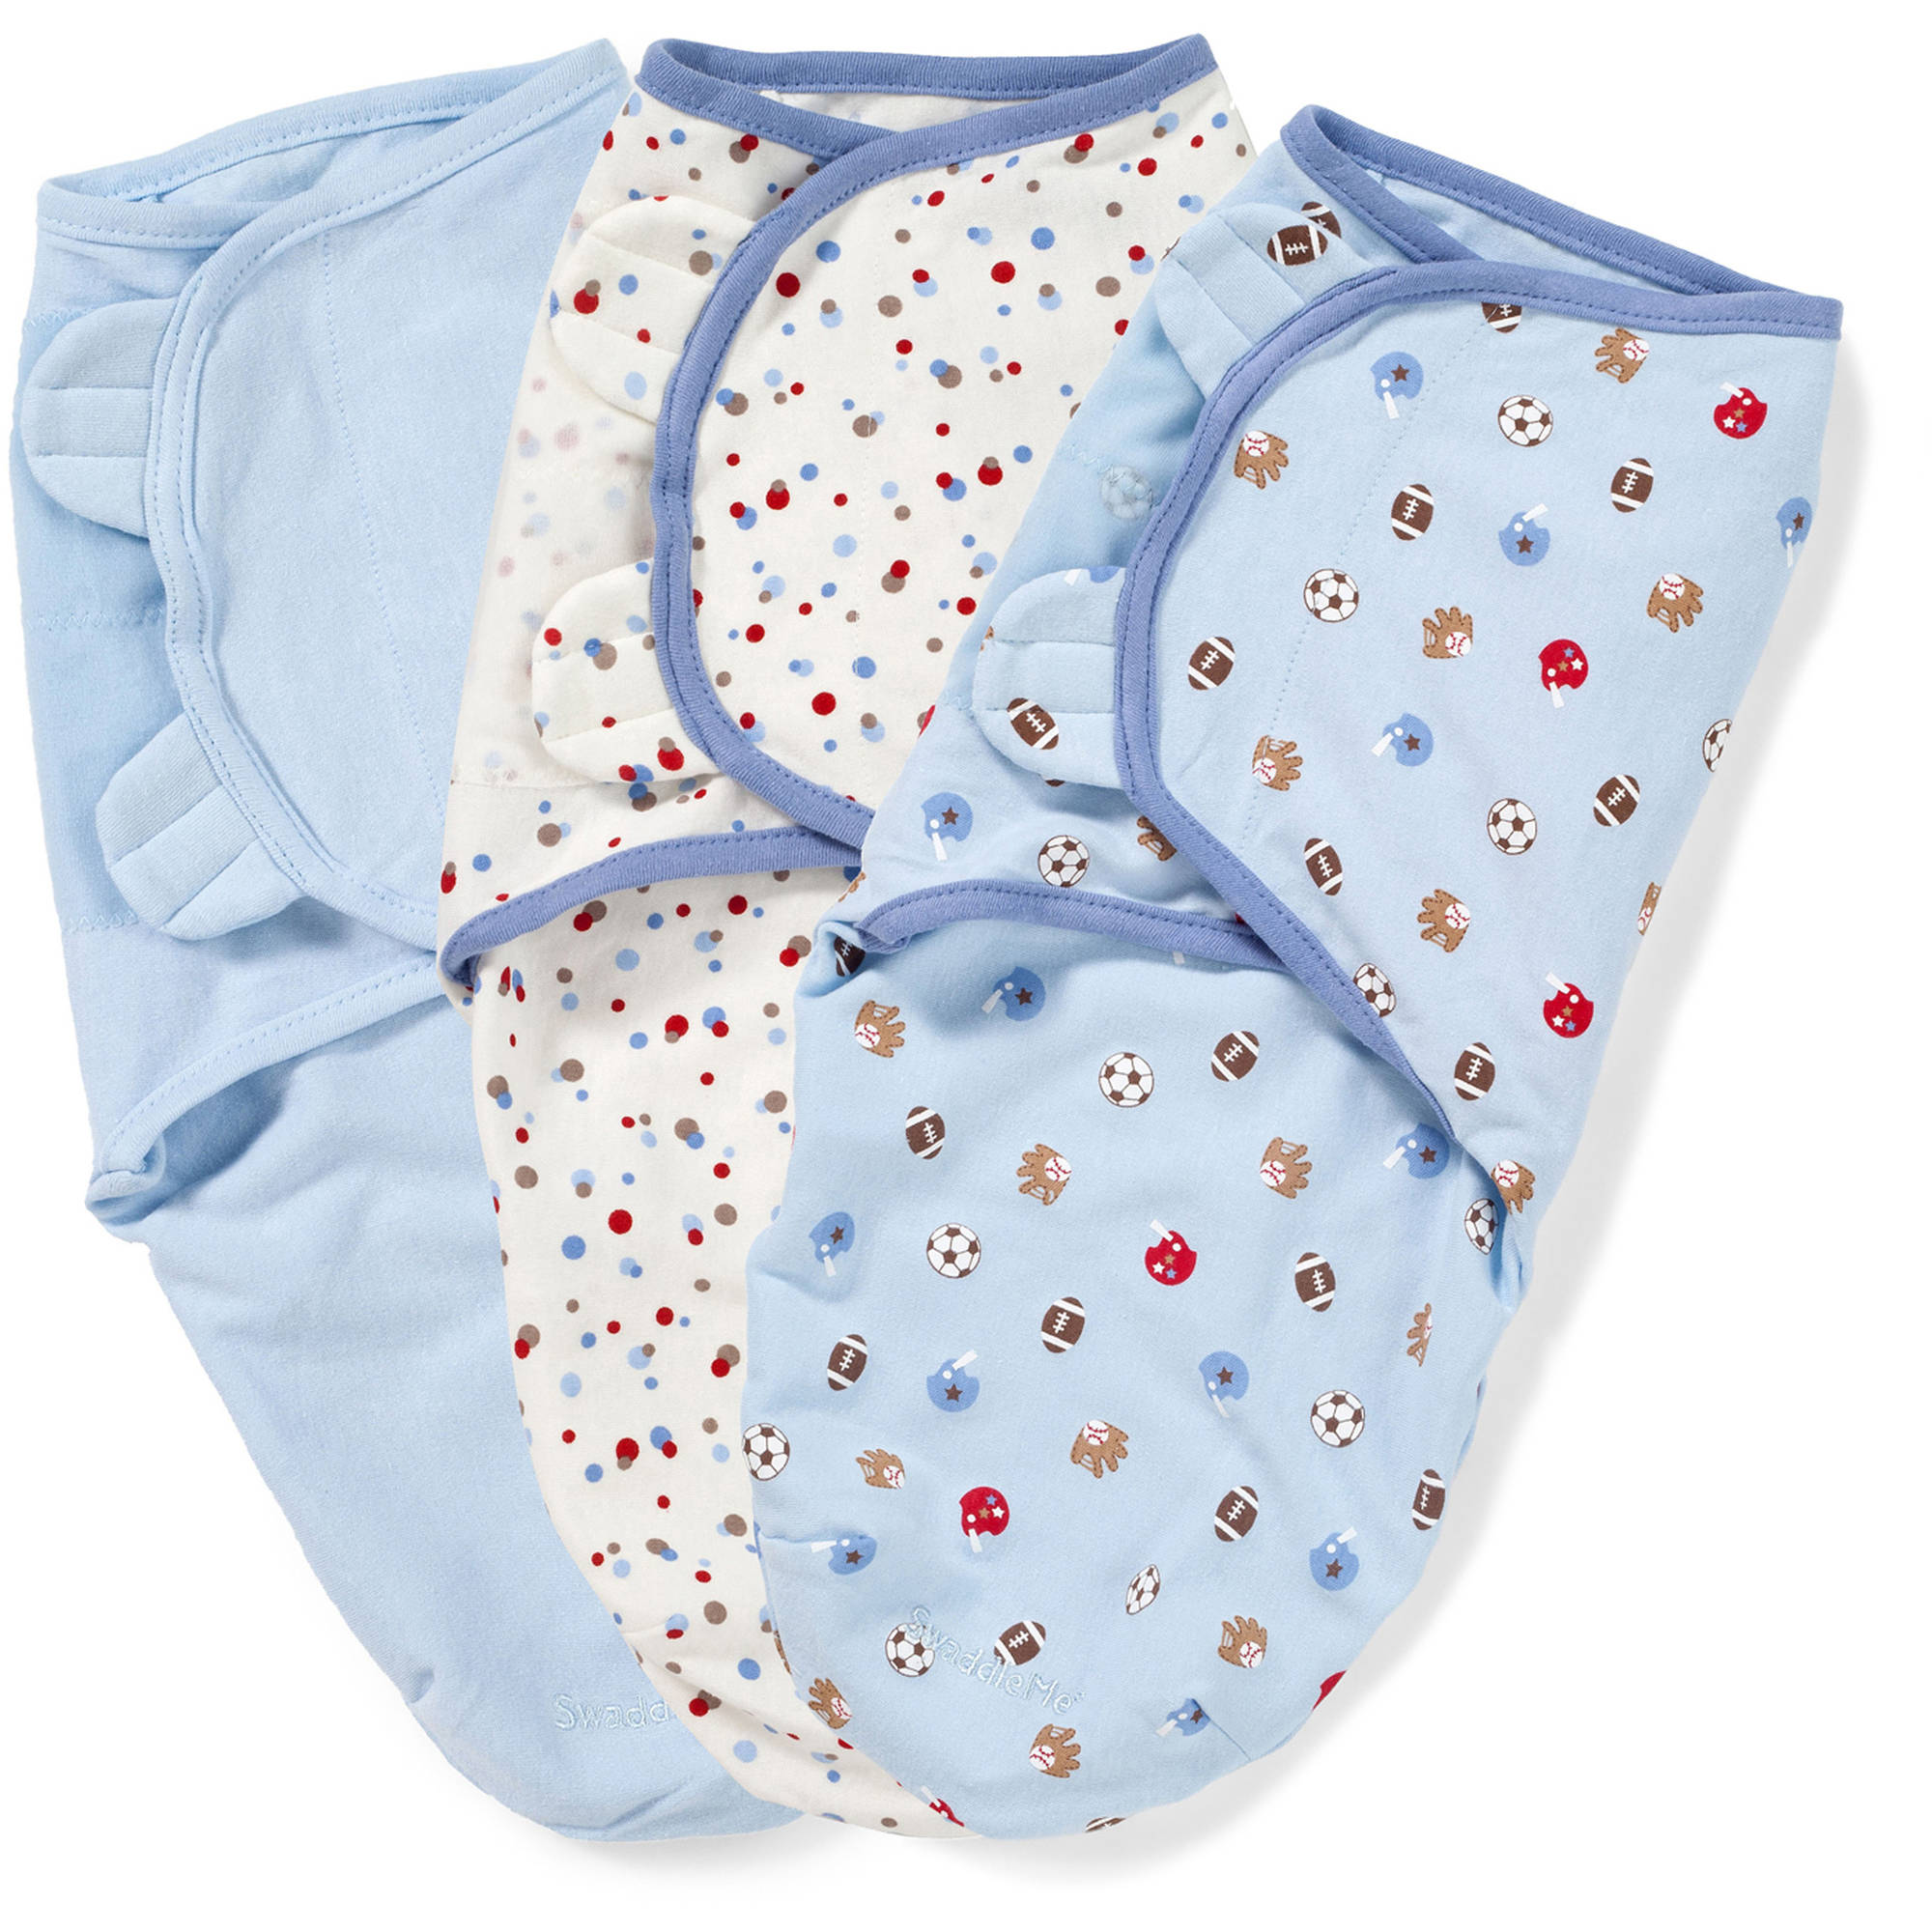 SwaddleMe Original Swaddle, 3-Pack, Blue Sports Dots, Small